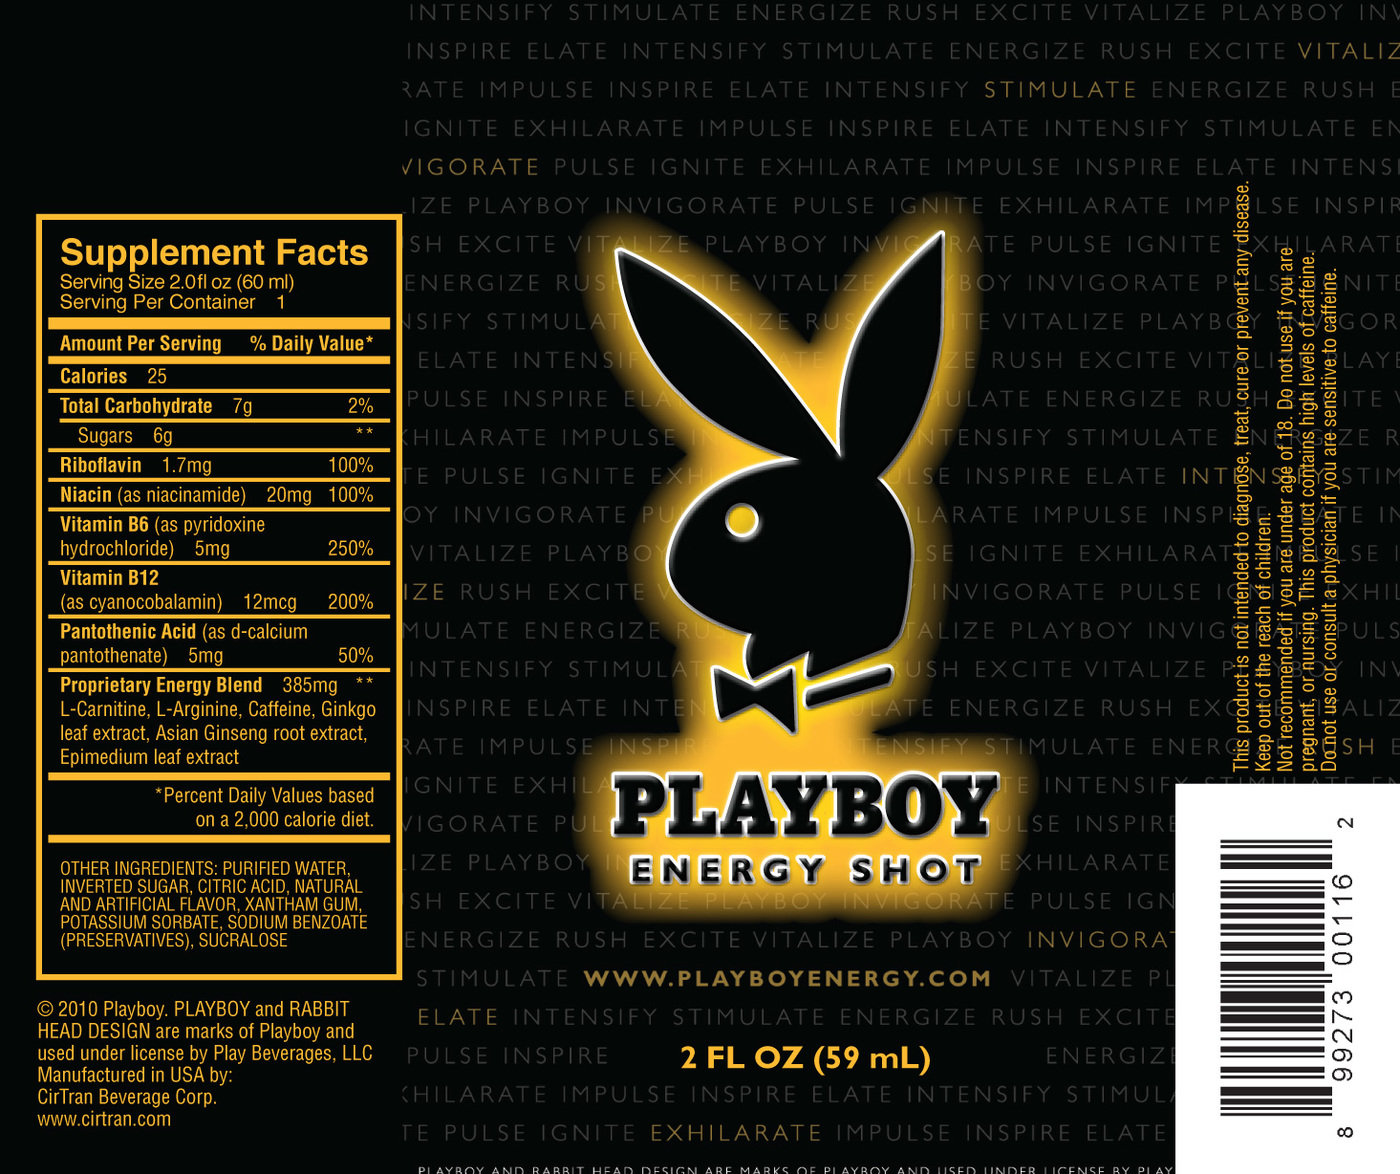 Playboy energy shot label various pieces for marketing promotional materials and branding